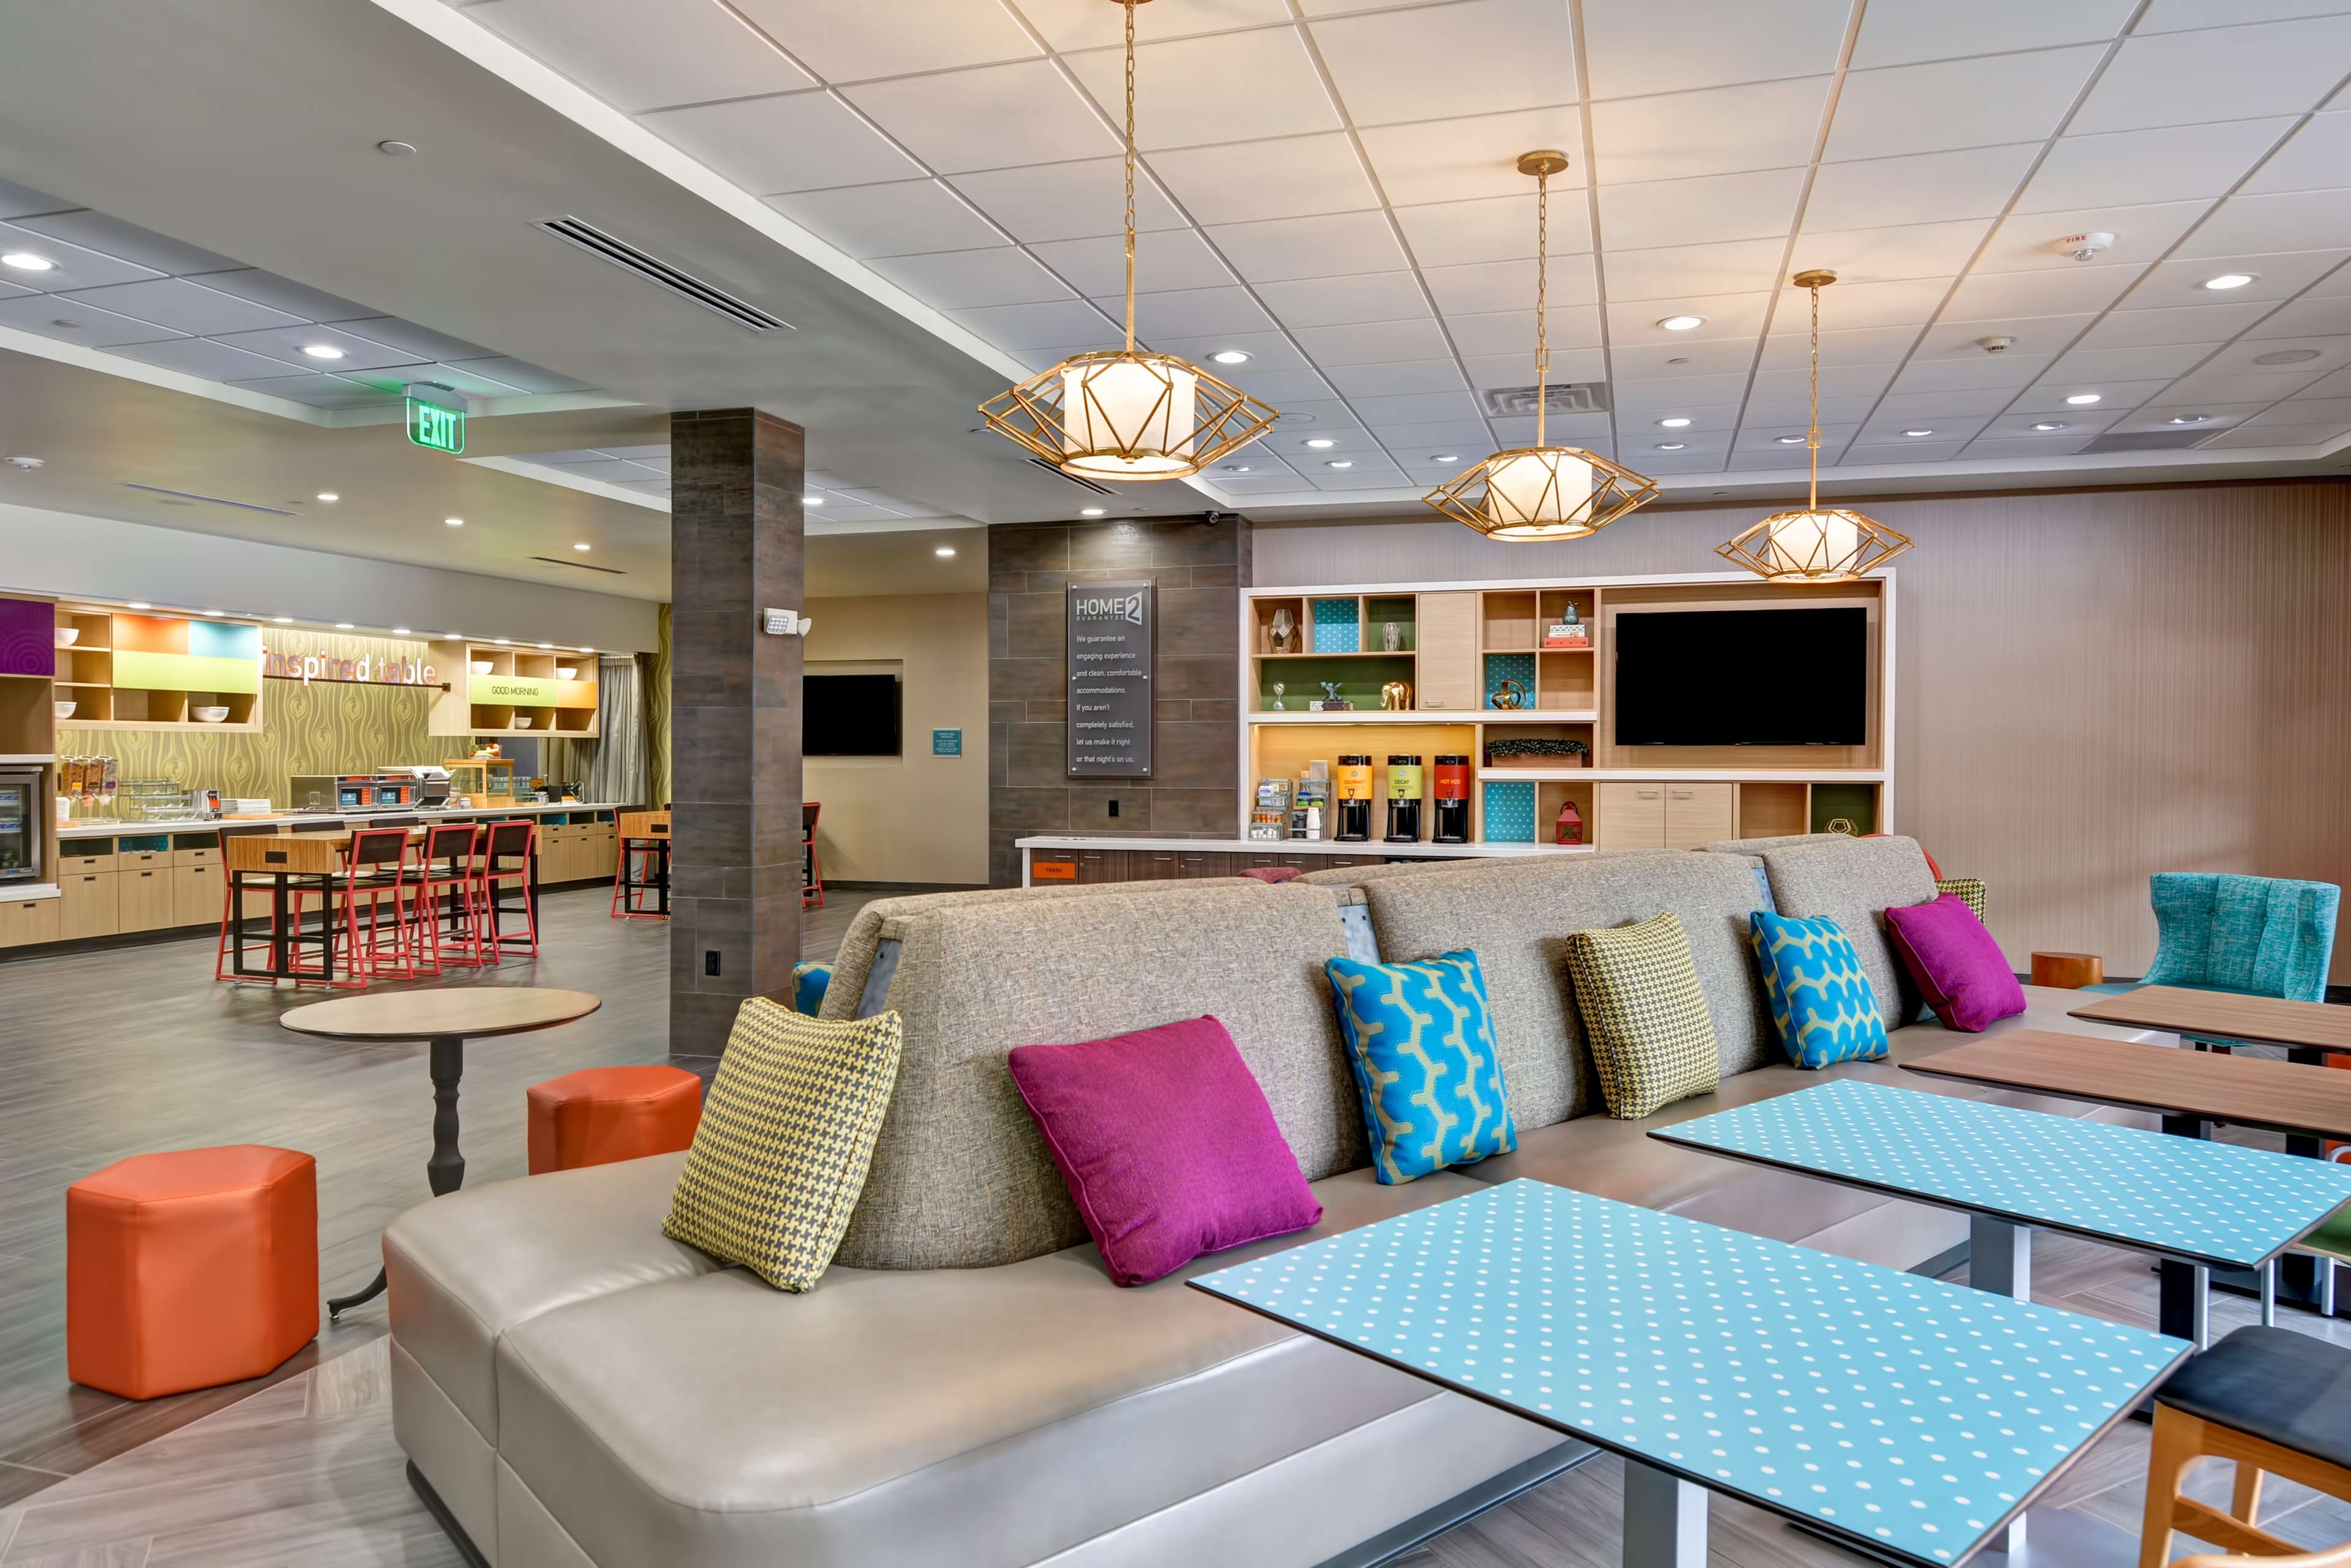 Home2 Suites by Hilton OKC Midwest City Tinker AFB image 8